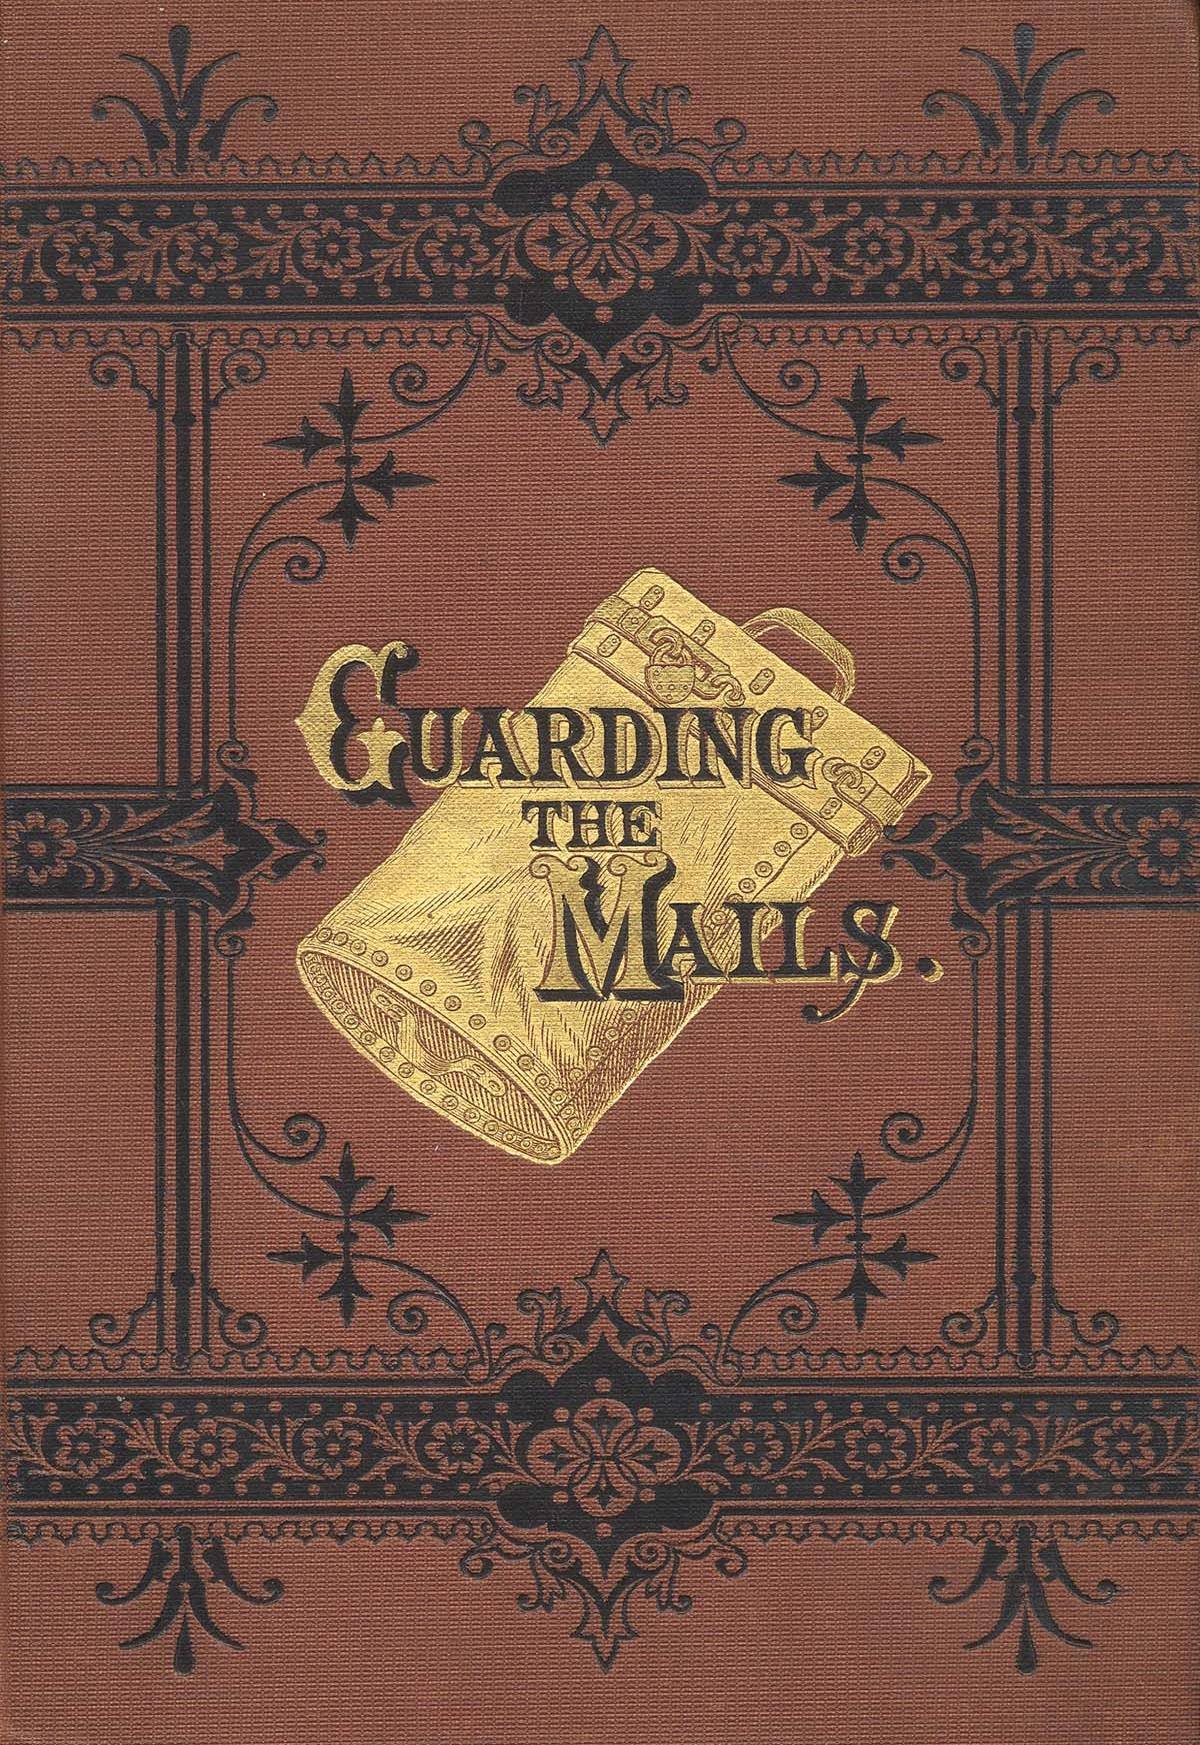 Book Cover Art Canvas ~ Guarding the mails posters and canvas art prints